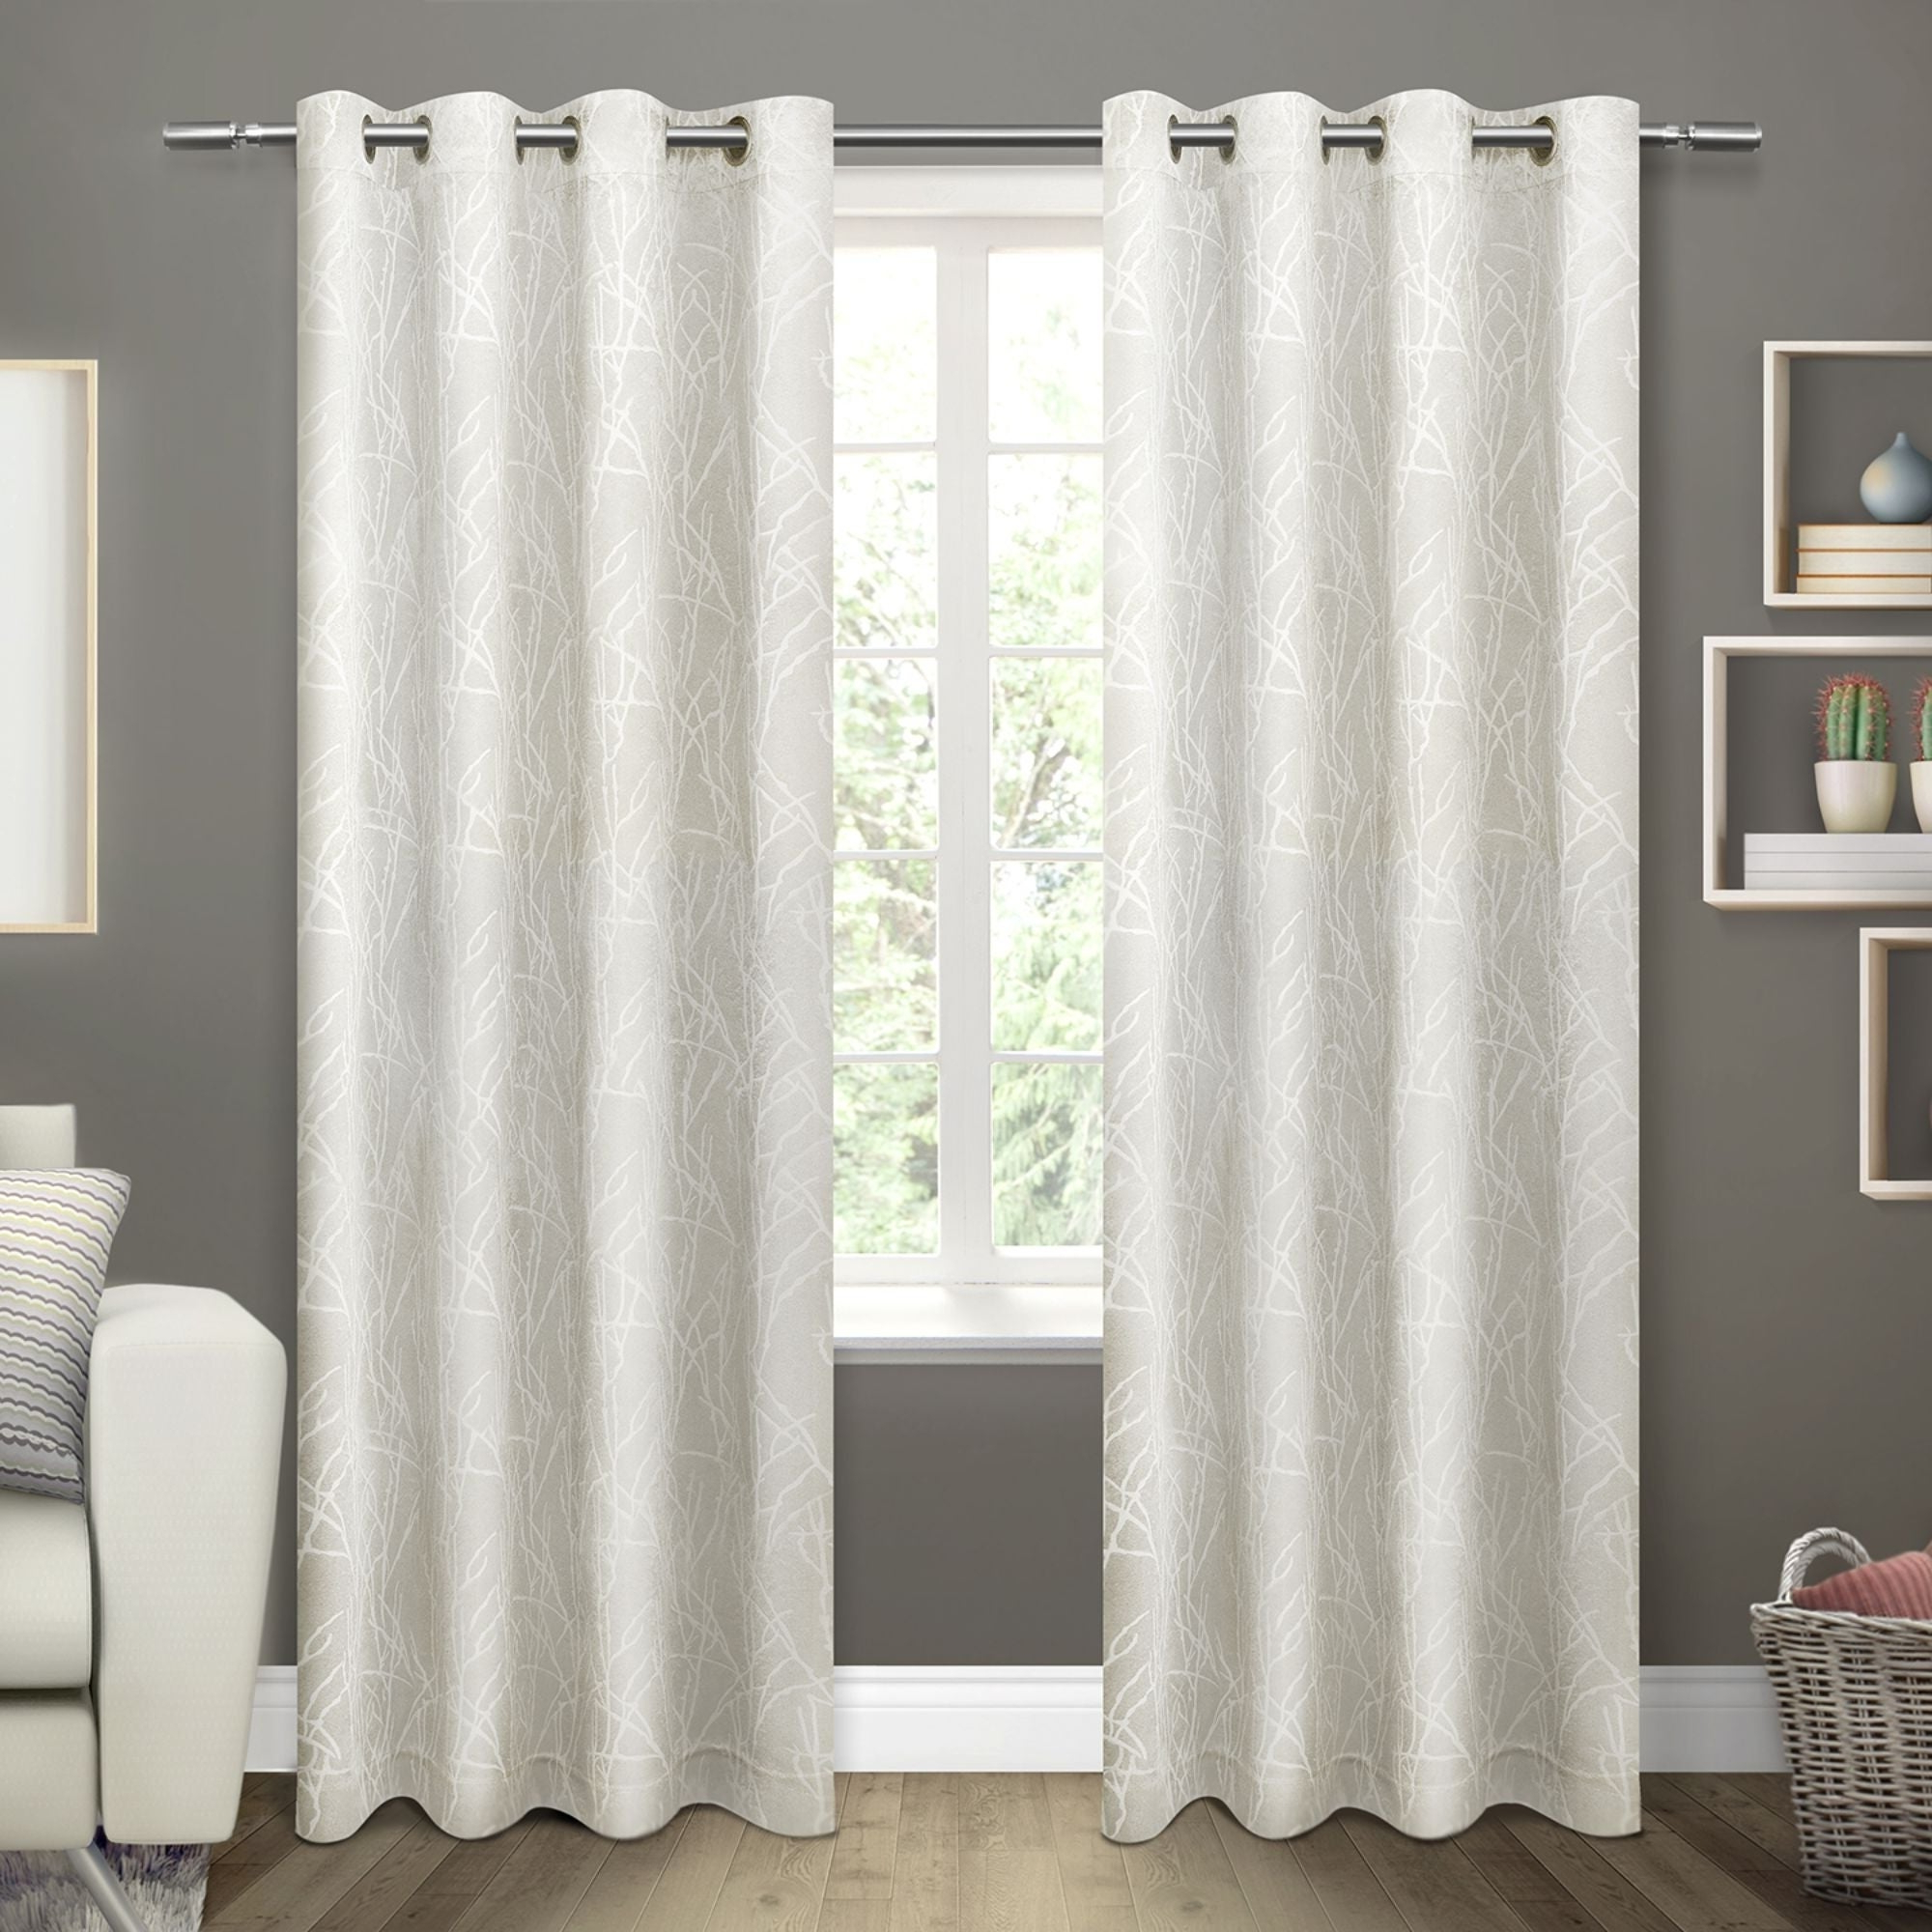 Popular Ati Home Twig Insulated Blackout Curtain Panel Pair With Grommet Top Inside Insulated Grommet Blackout Curtain Panel Pairs (View 15 of 20)